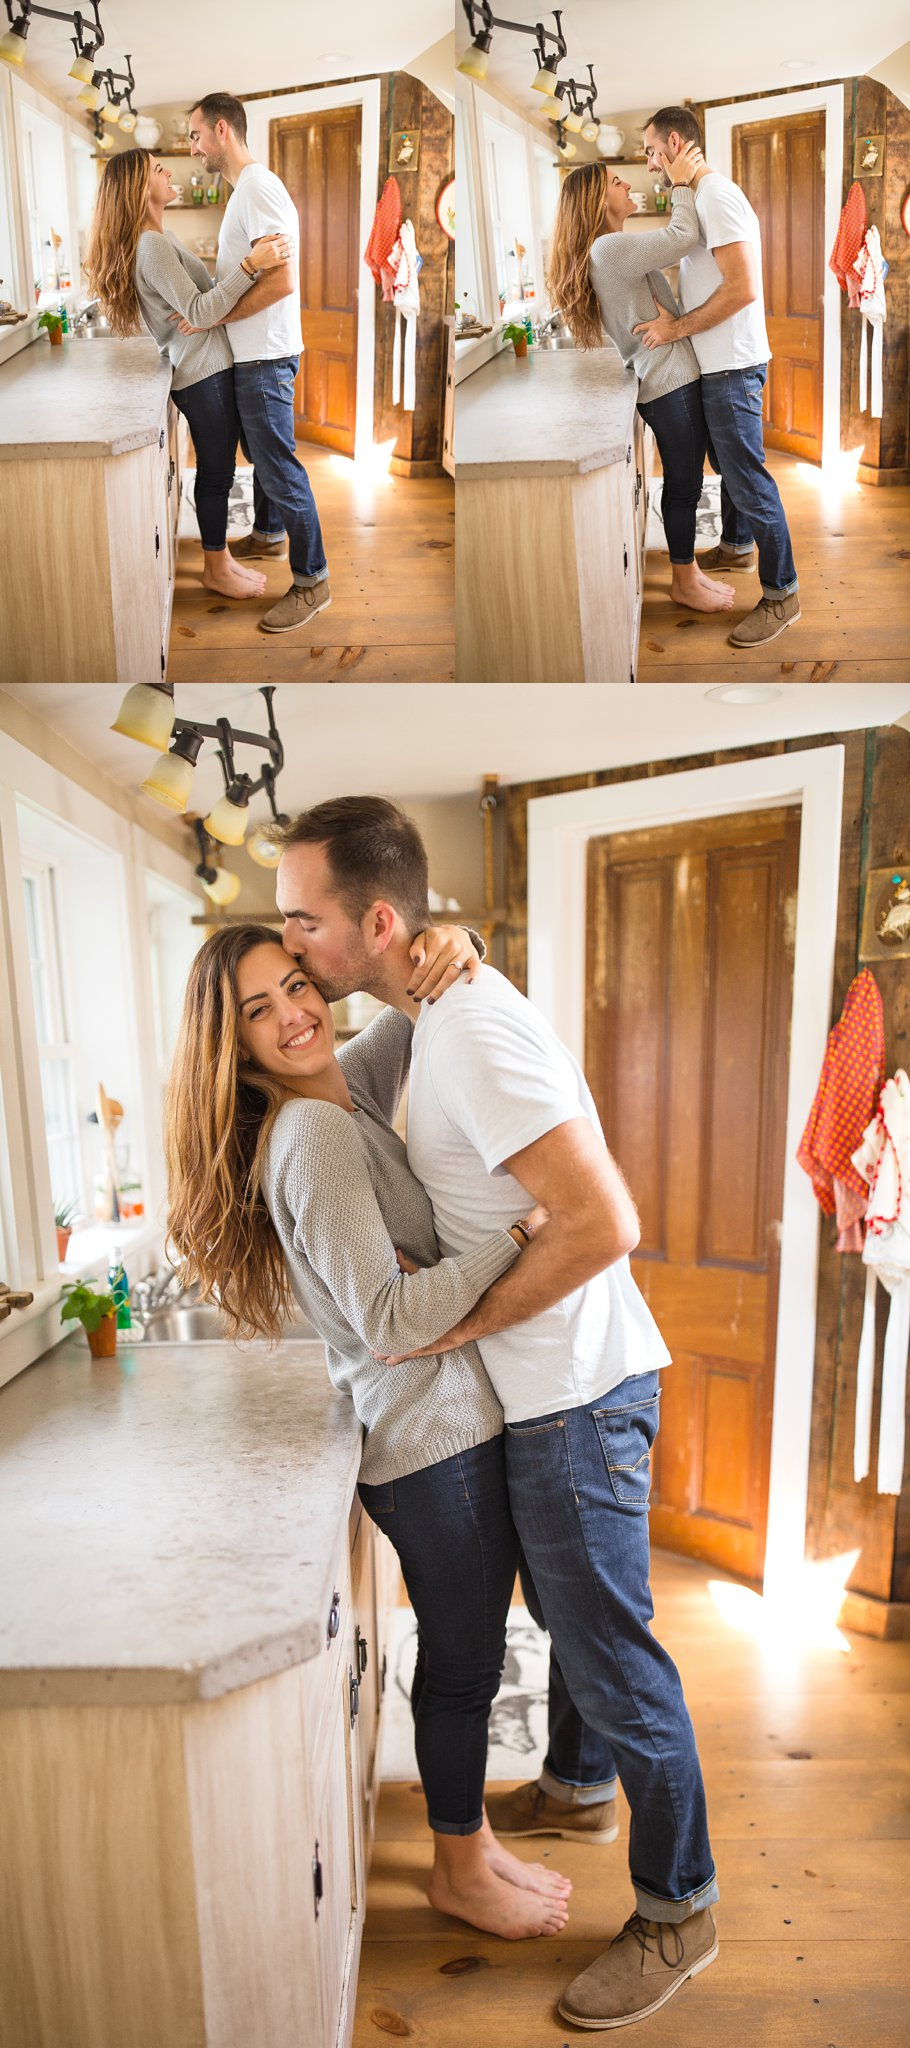 Indoor-Intimate-Engagement-Session13.jpg